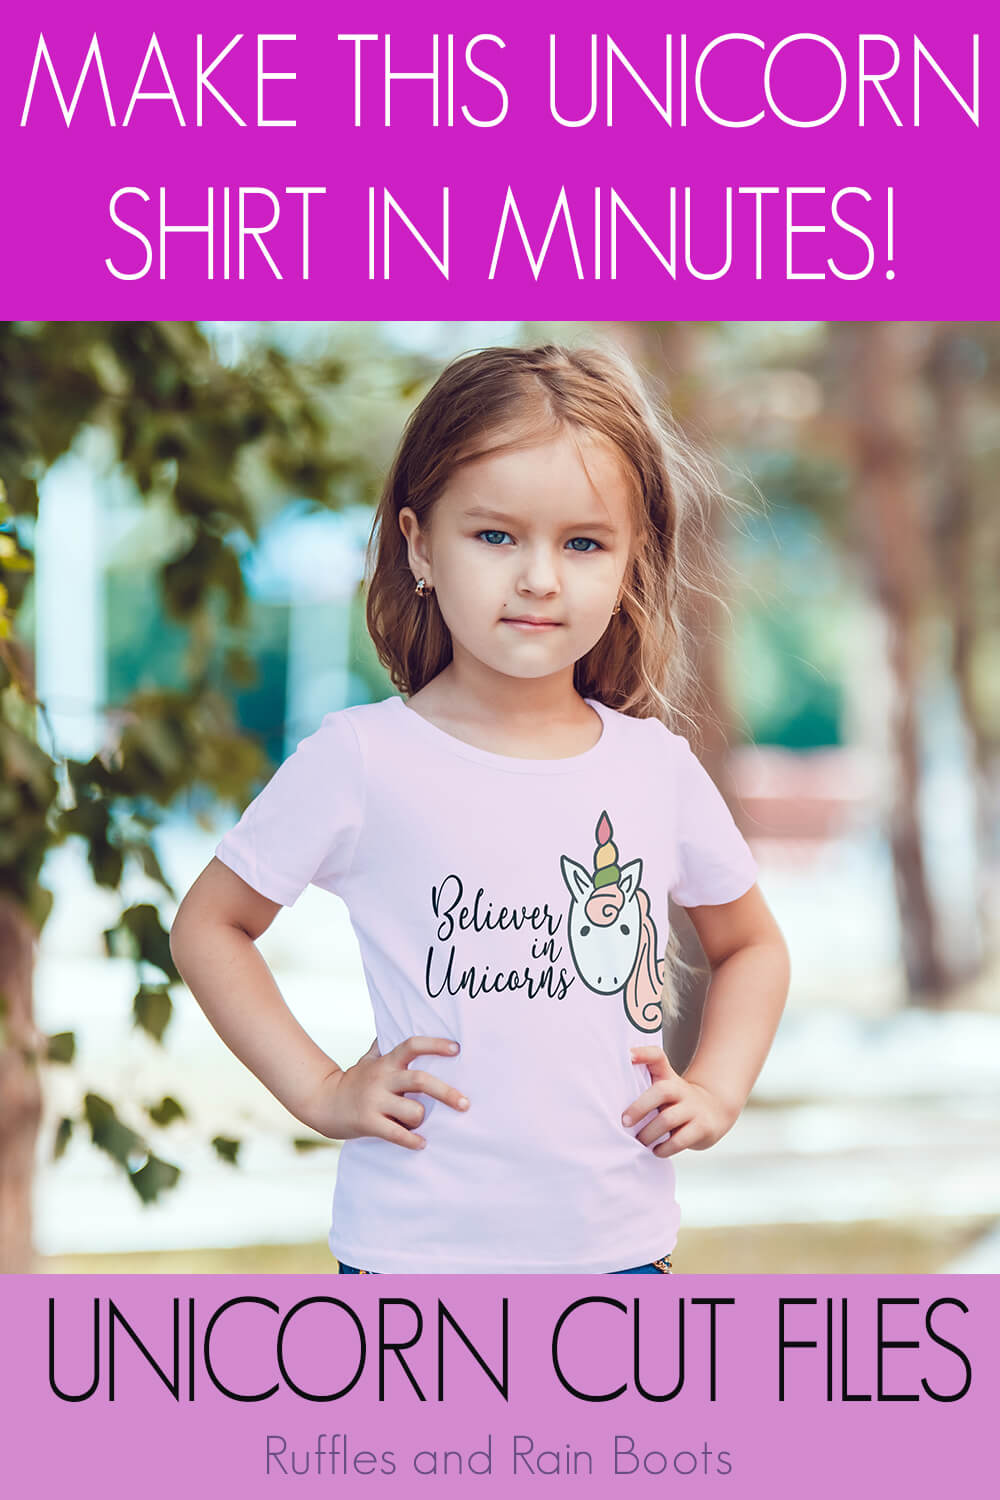 Believer in Unicorns free unicorn cut files for silhouette on kid t-shirt on a little girl with text which reads make this unicorn shirt in minutes unicorn cut files